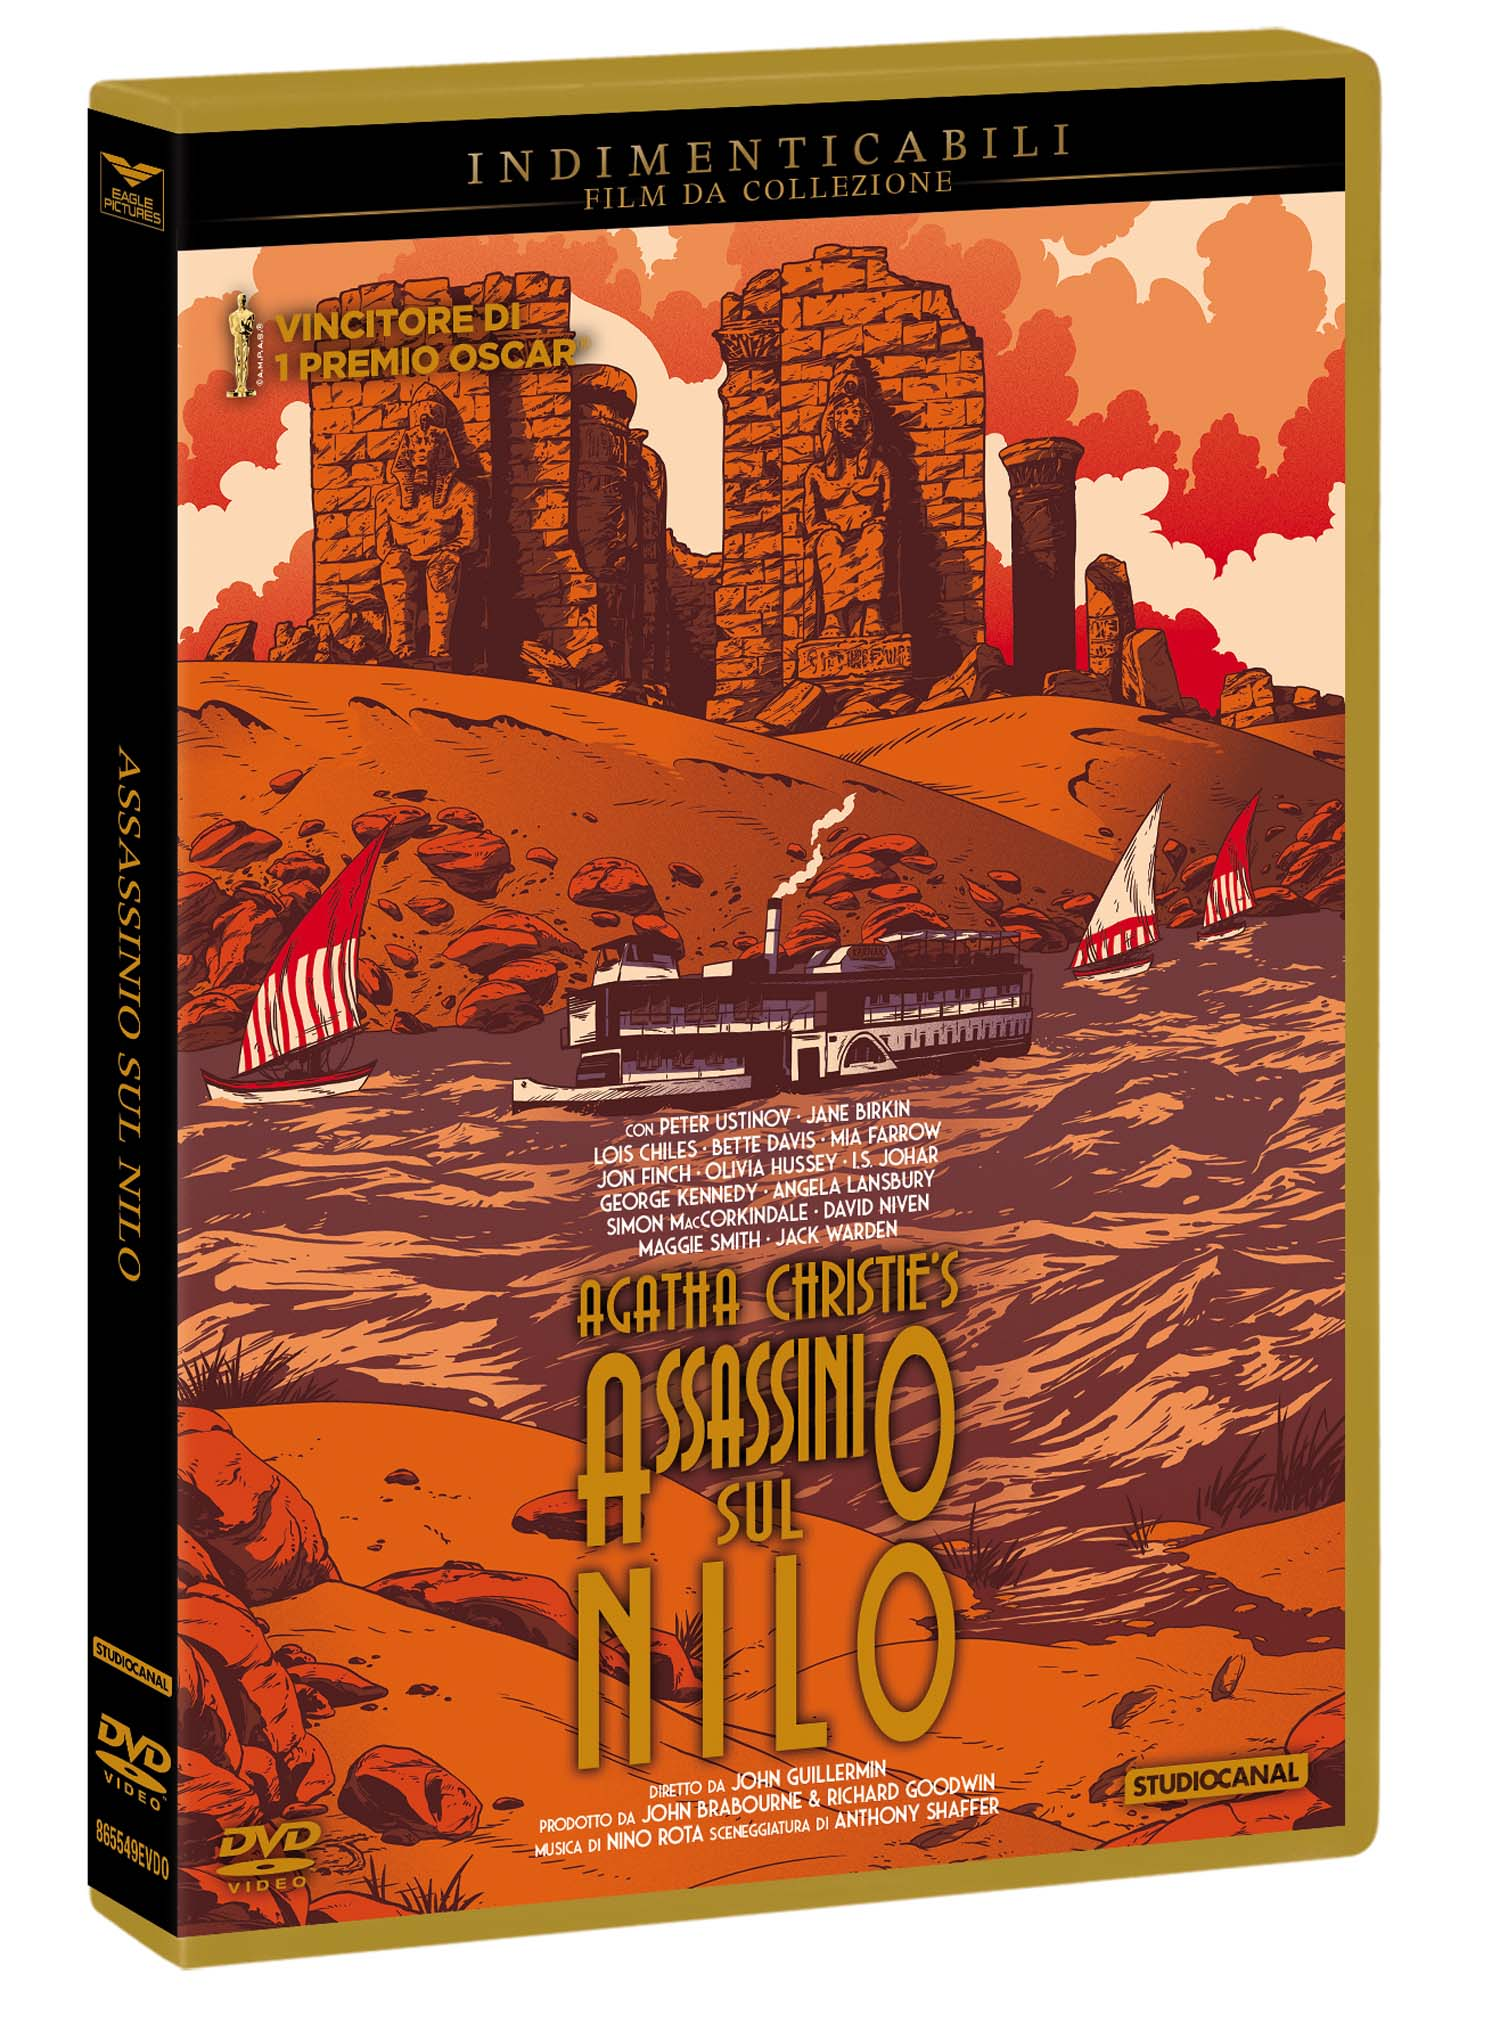 ASSASSINIO SUL NILO (INDIMENTICABILI) (DVD)